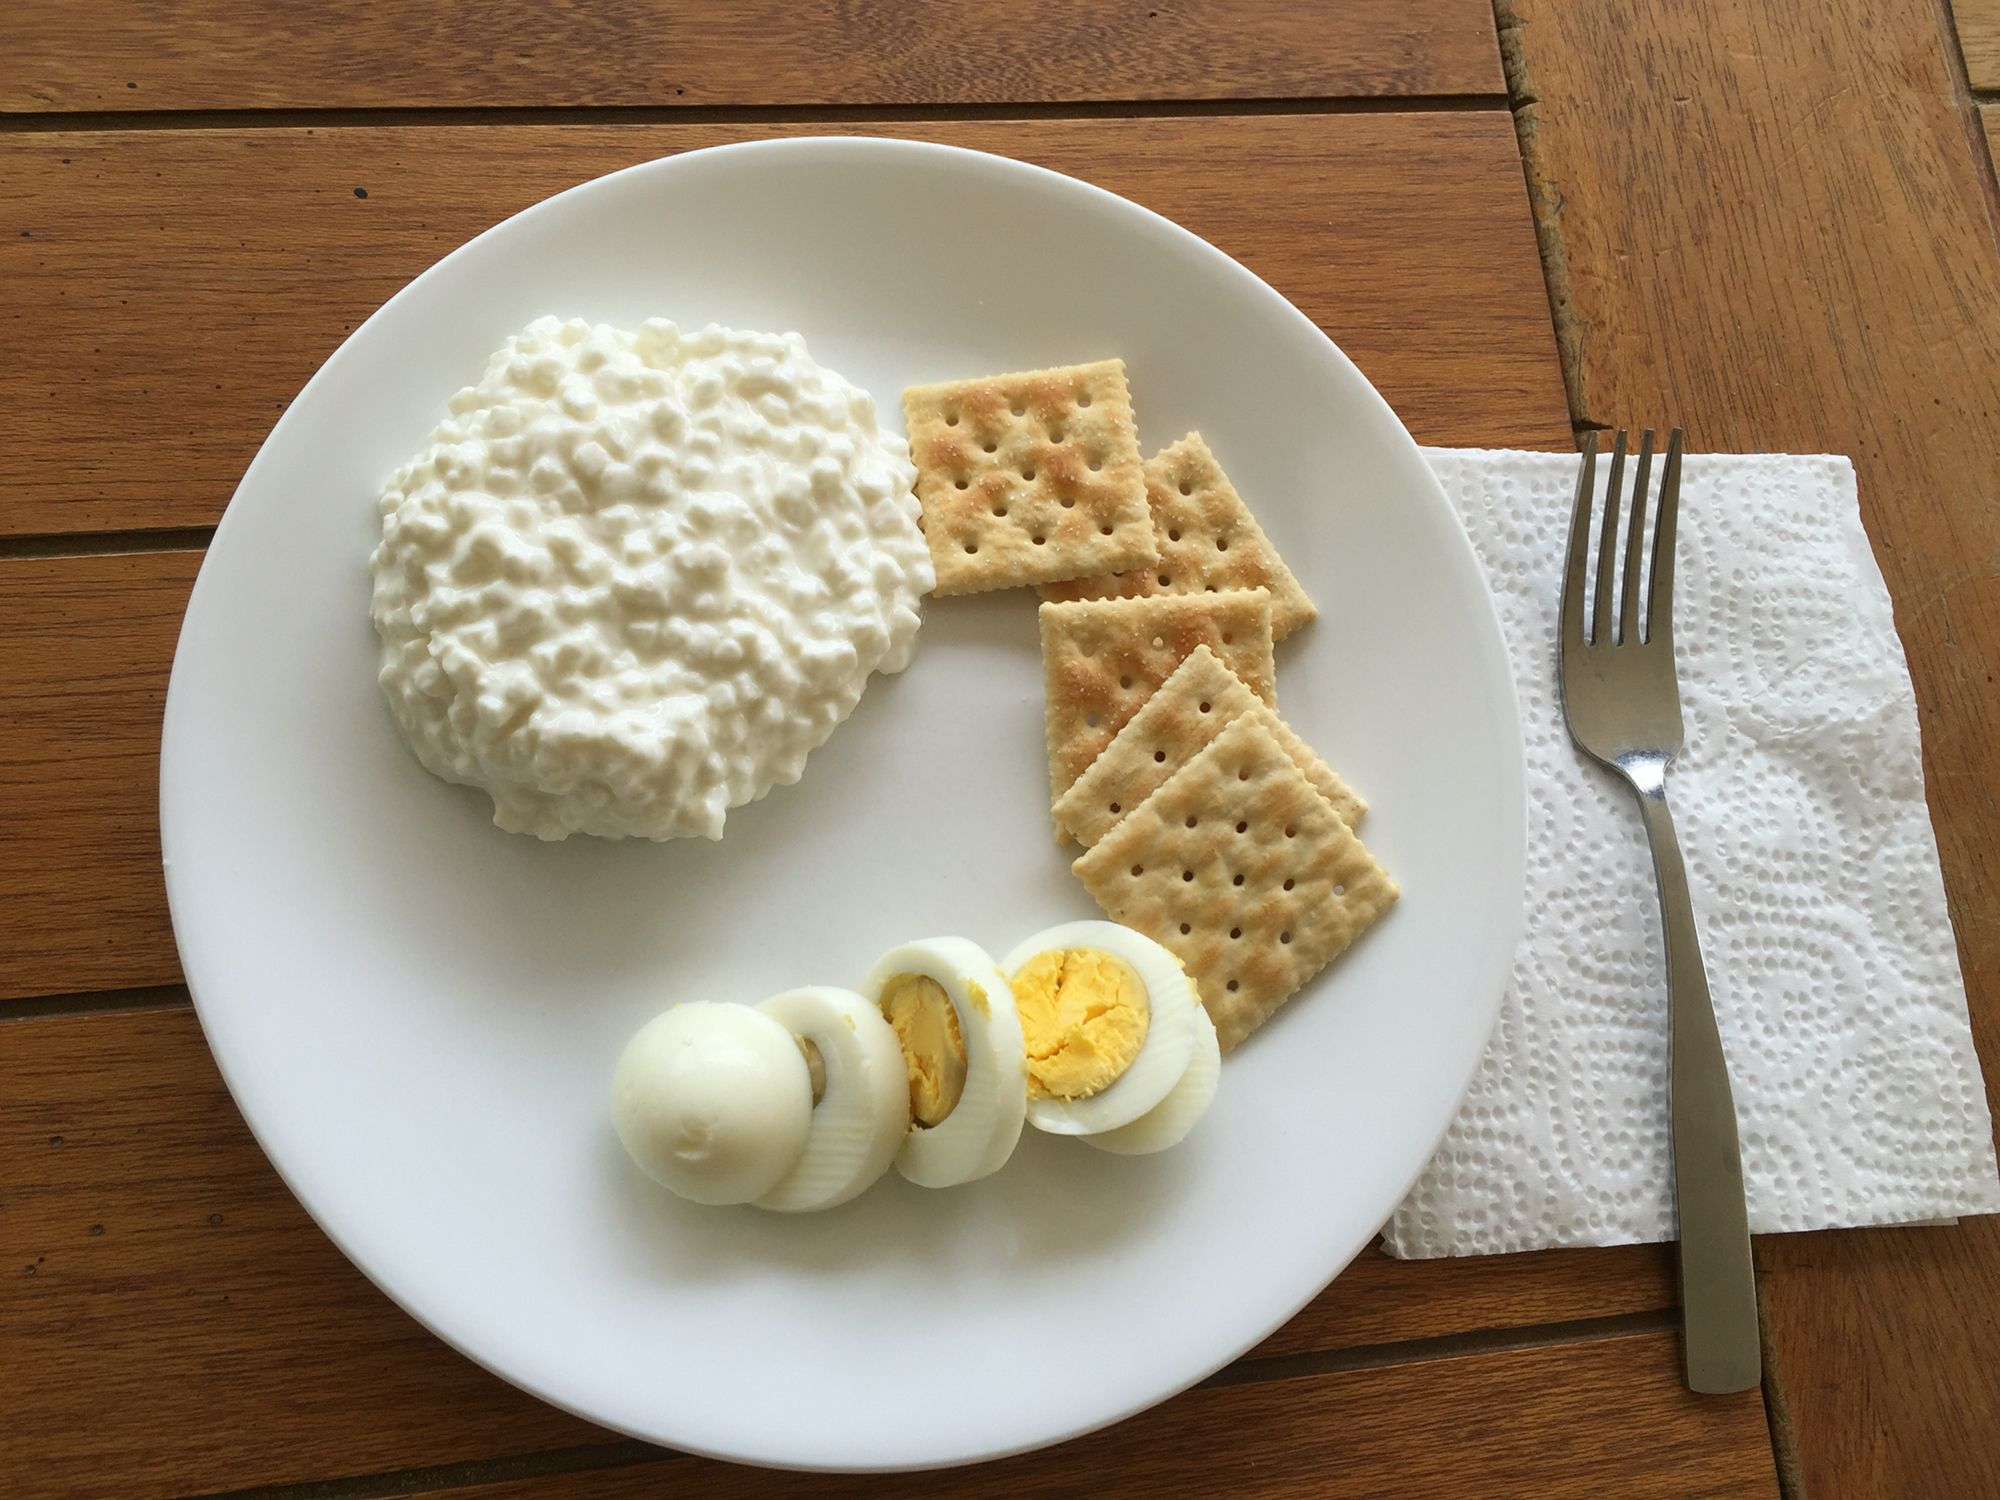 Charming 2nd Day Lunch 1 Cup Of Cottage Cheese, 1 Hardboiled Egg, 5 Saltine Crackers